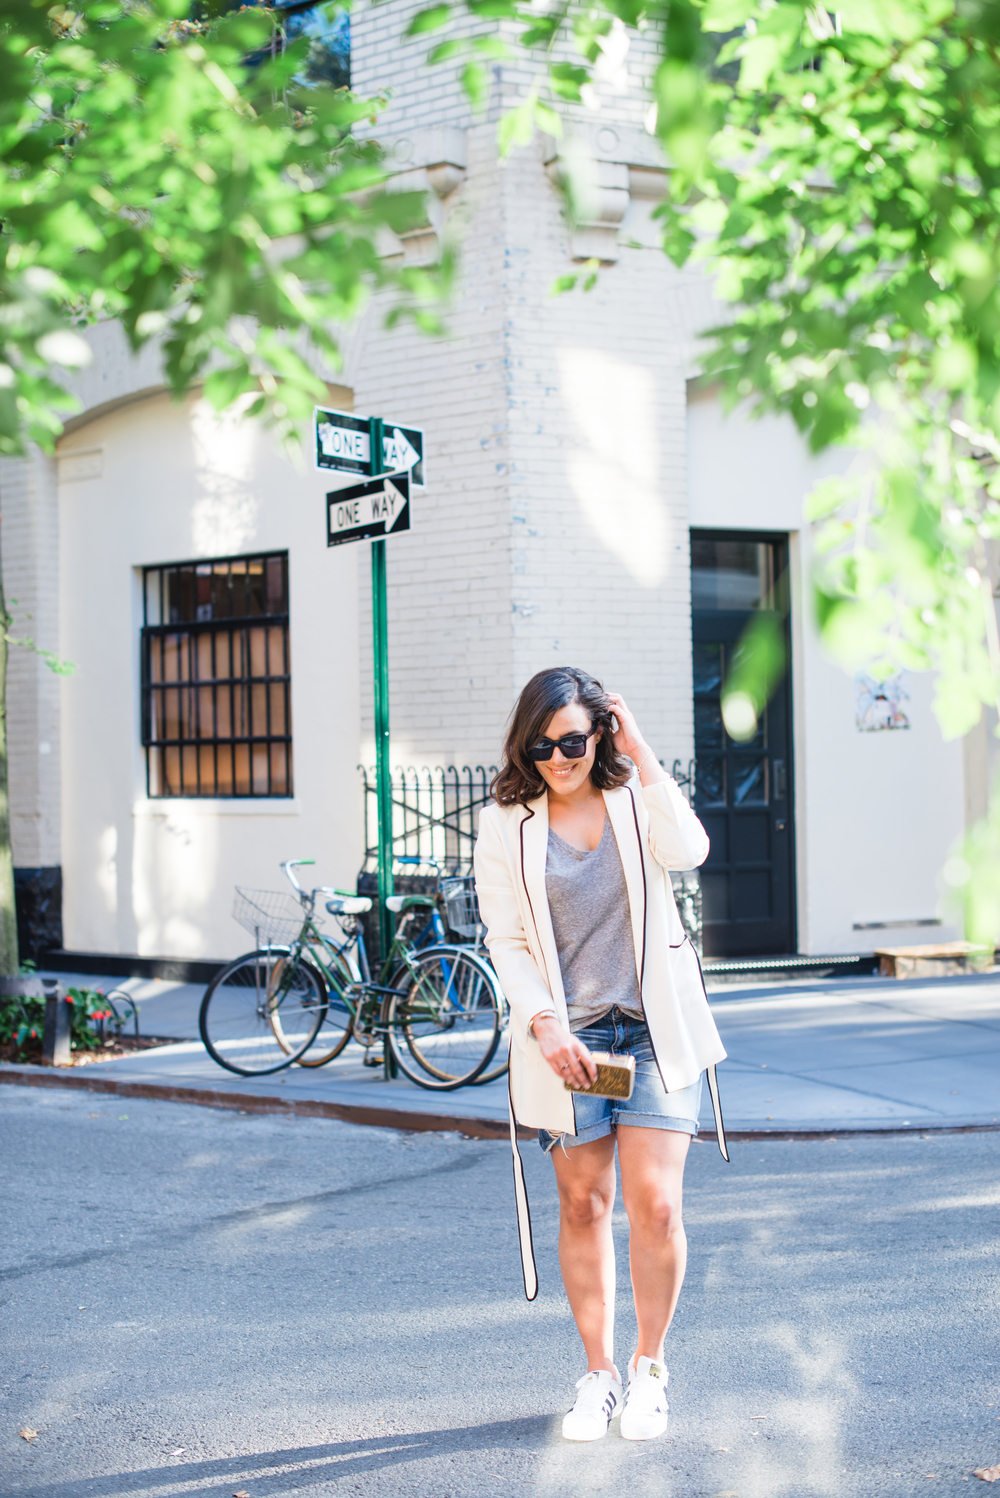 3-ways-to-dress-up-your-denim-shorts-this-summer-american-eagle-denim-shorts-boyfriend-shorts-what-to-wear-when-it's-really-hot-outside-latina-new-york-city-fashion-blogger-style-operator-summer-fashion.jpg